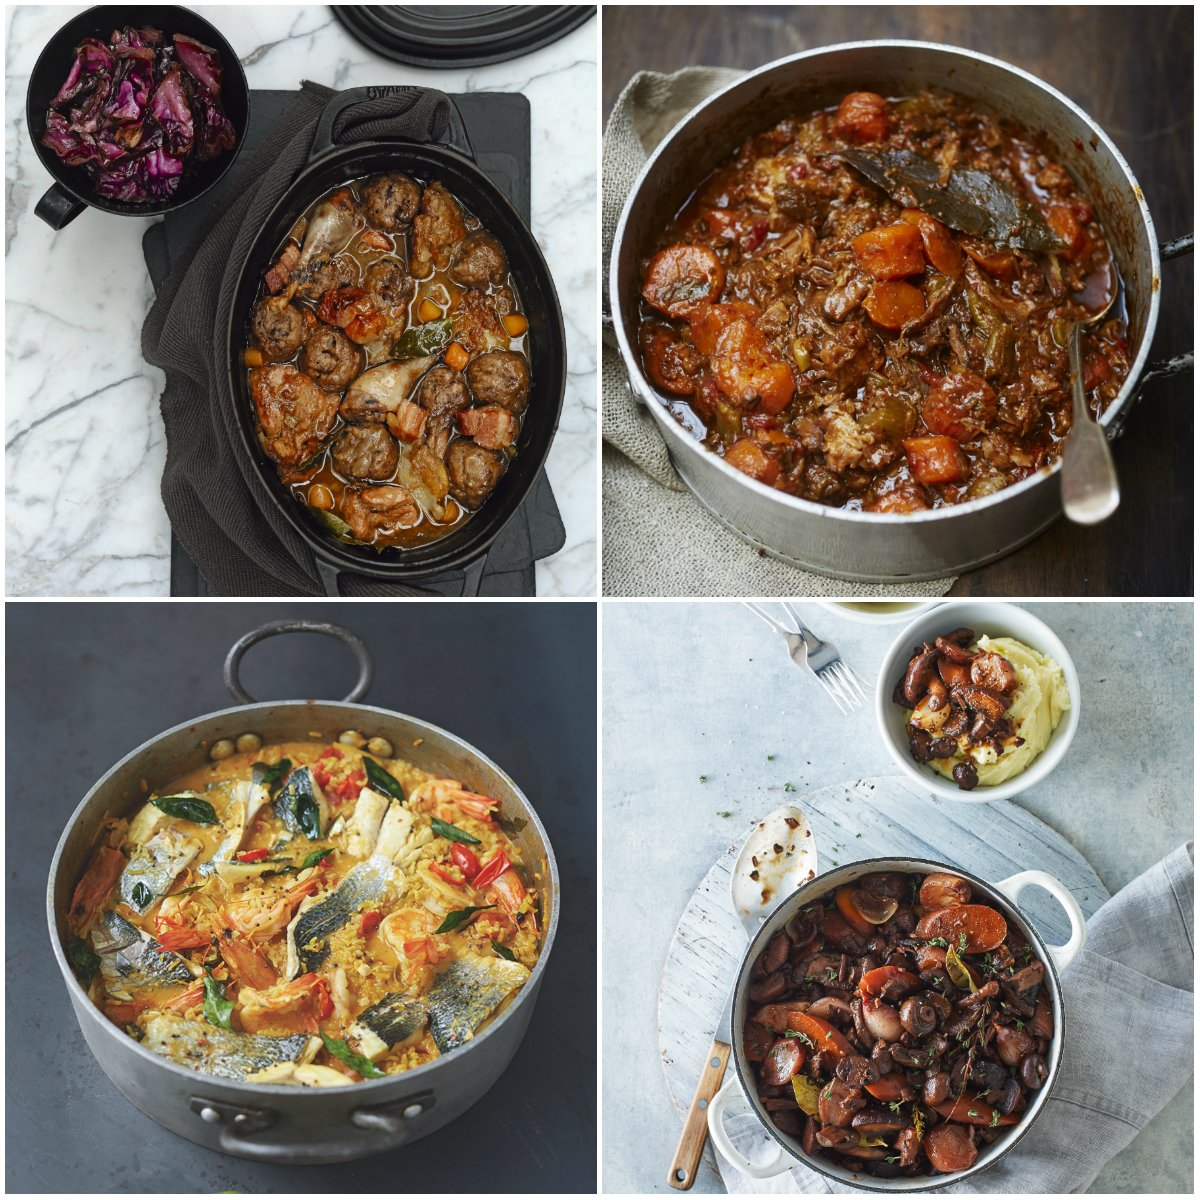 4 warming stews to turn your Sunday blues into a special occasion! https://t.co/rL1Xrx1JzT https://t.co/oKpQPjERNS